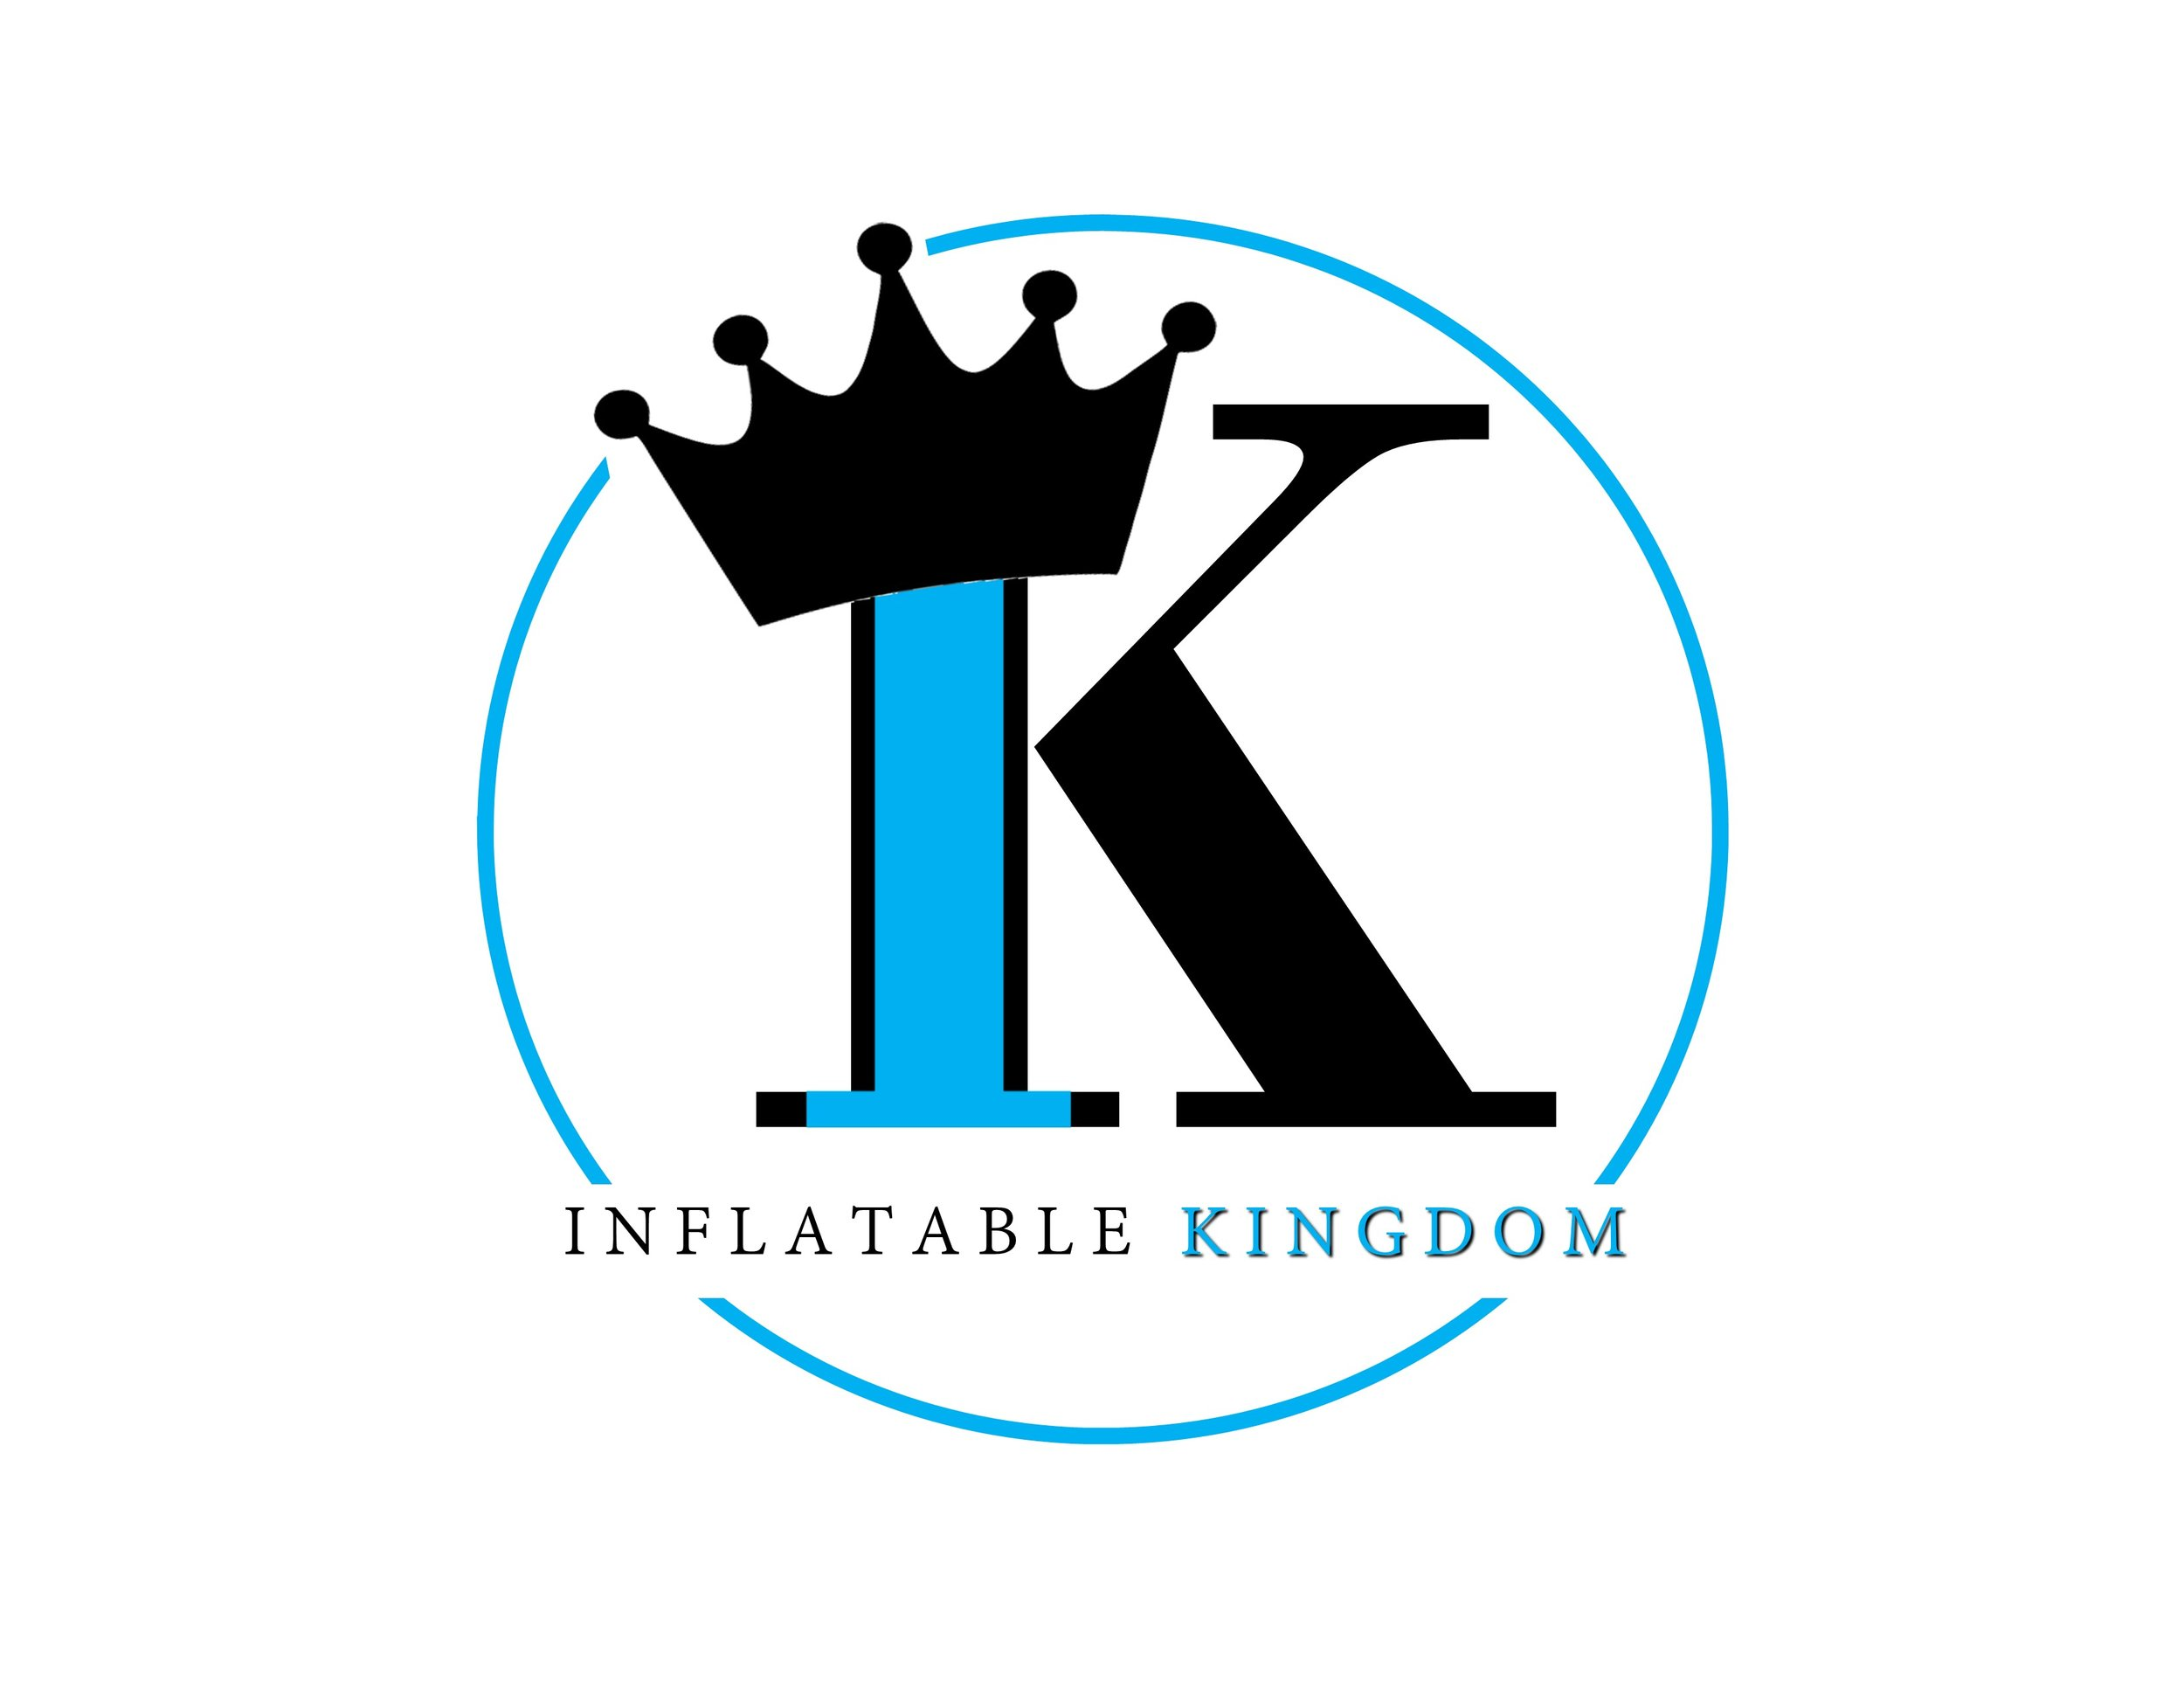 INFLATABLE KINGDOM FINAL LOGO.jpg